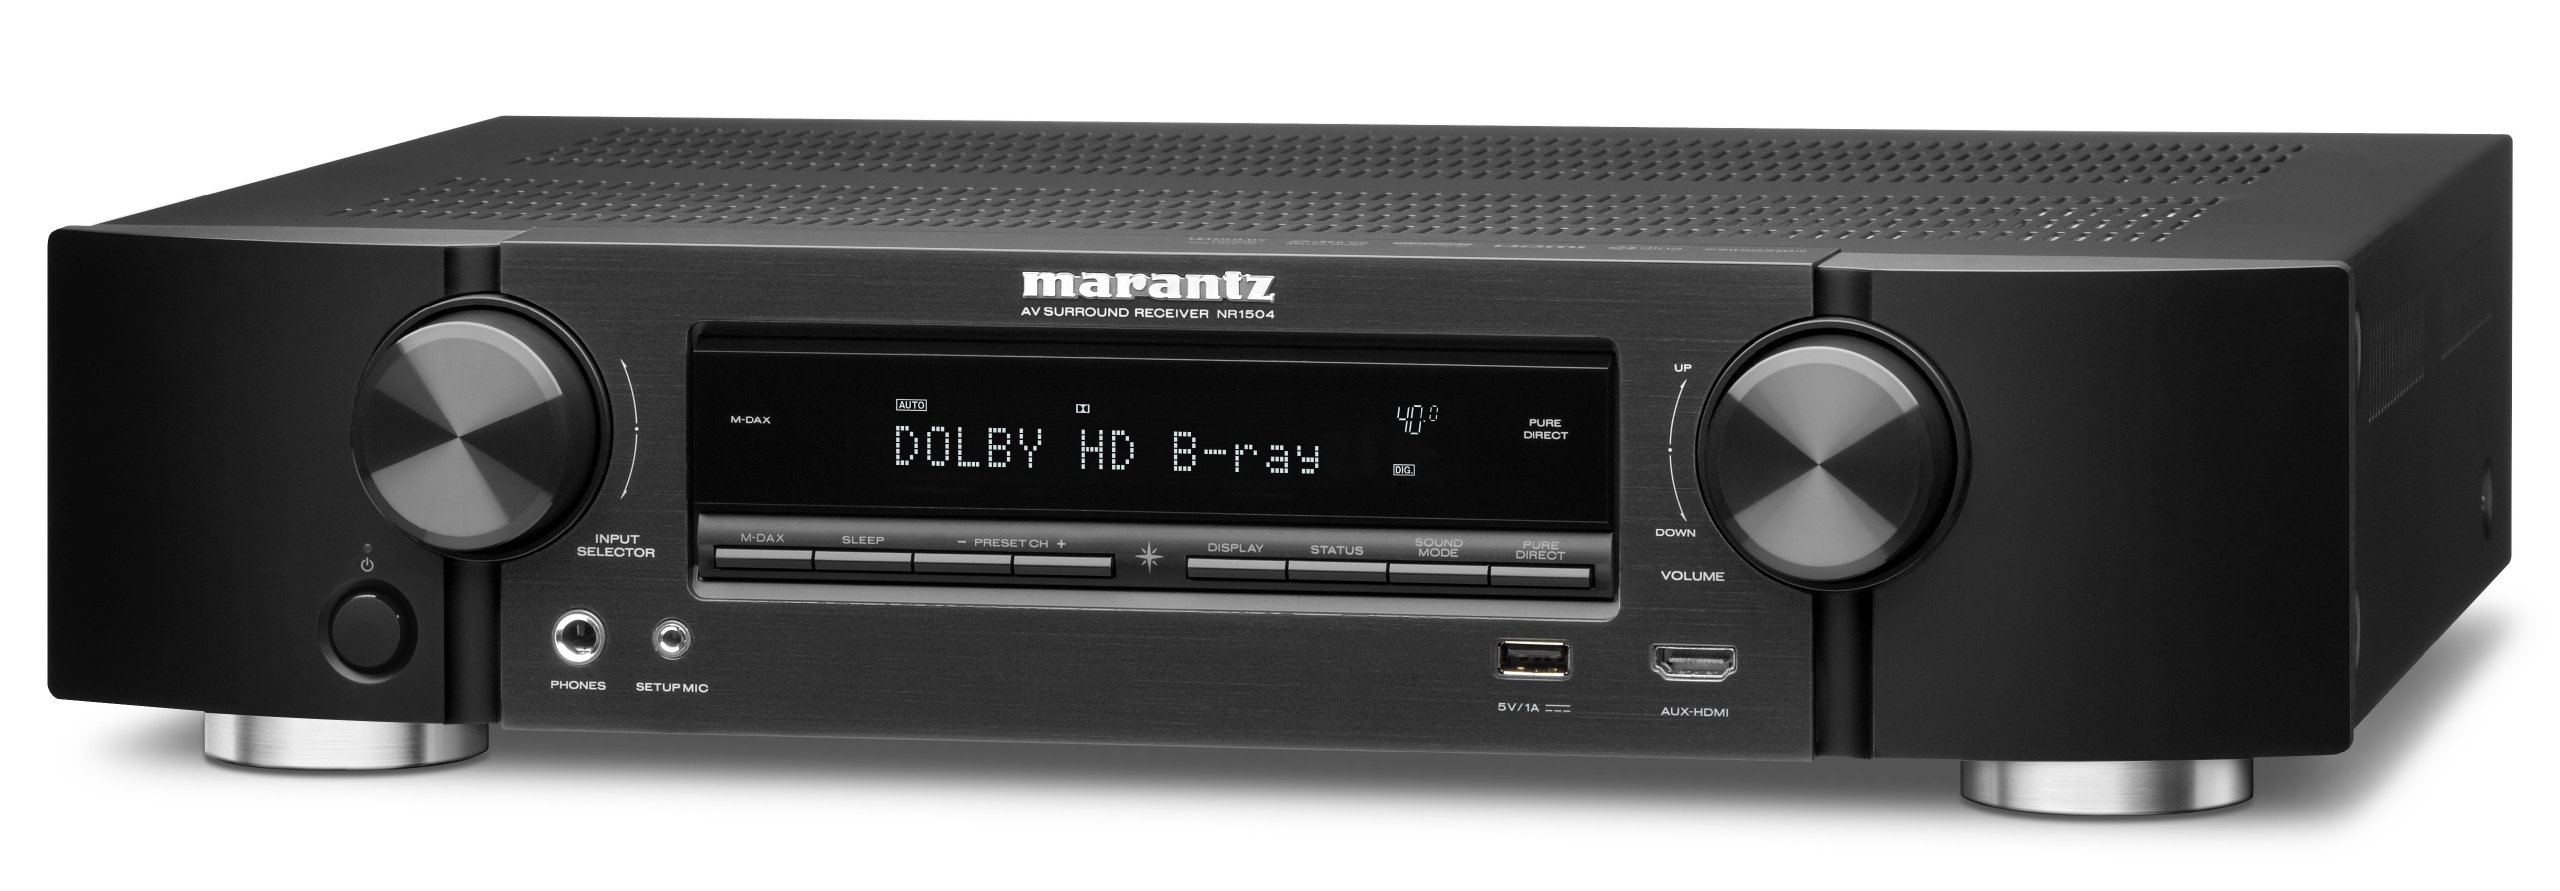 Marantz NR1504 Slim Line 5.1 Channel Home Theater Network AV Receiver with AirPlay